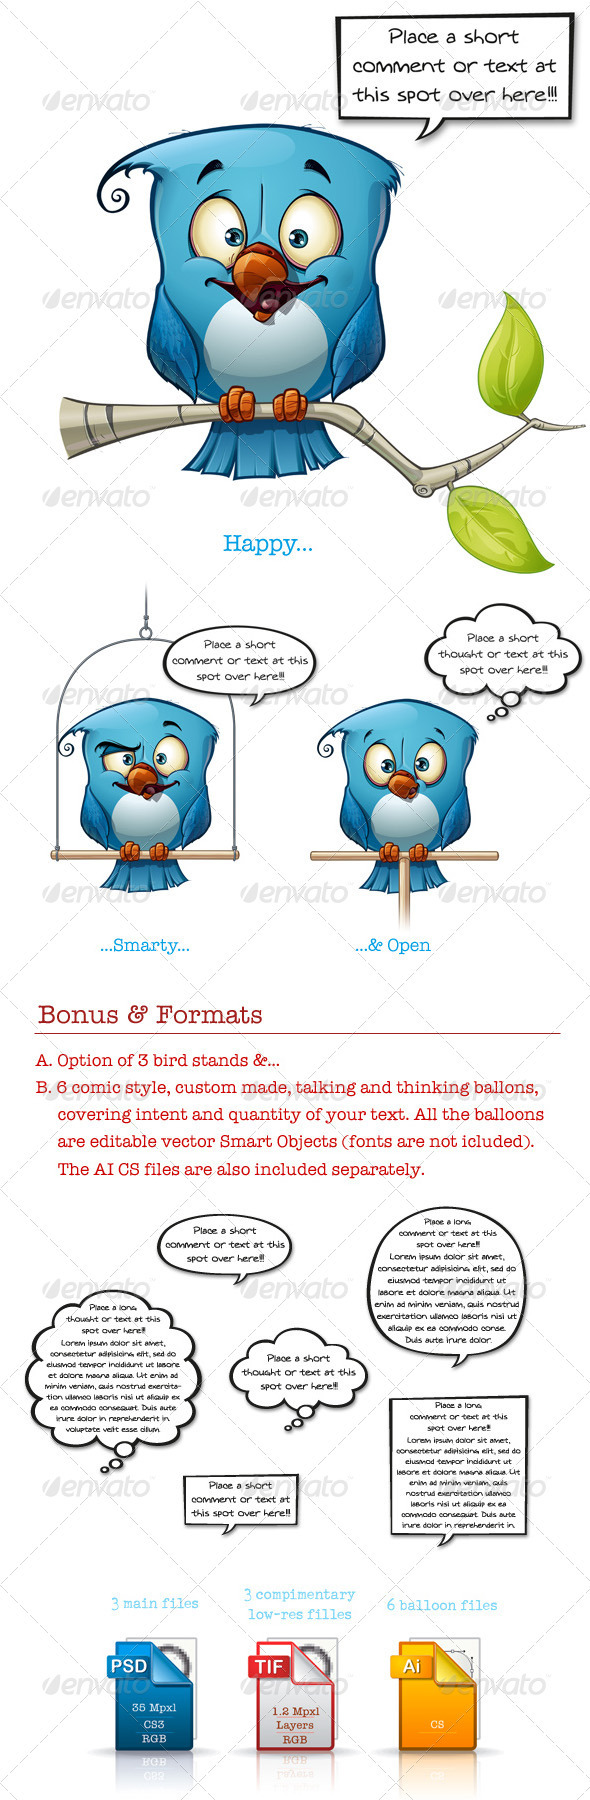 GraphicRiver Blue Bird Happy-Smarty-Open 3472123